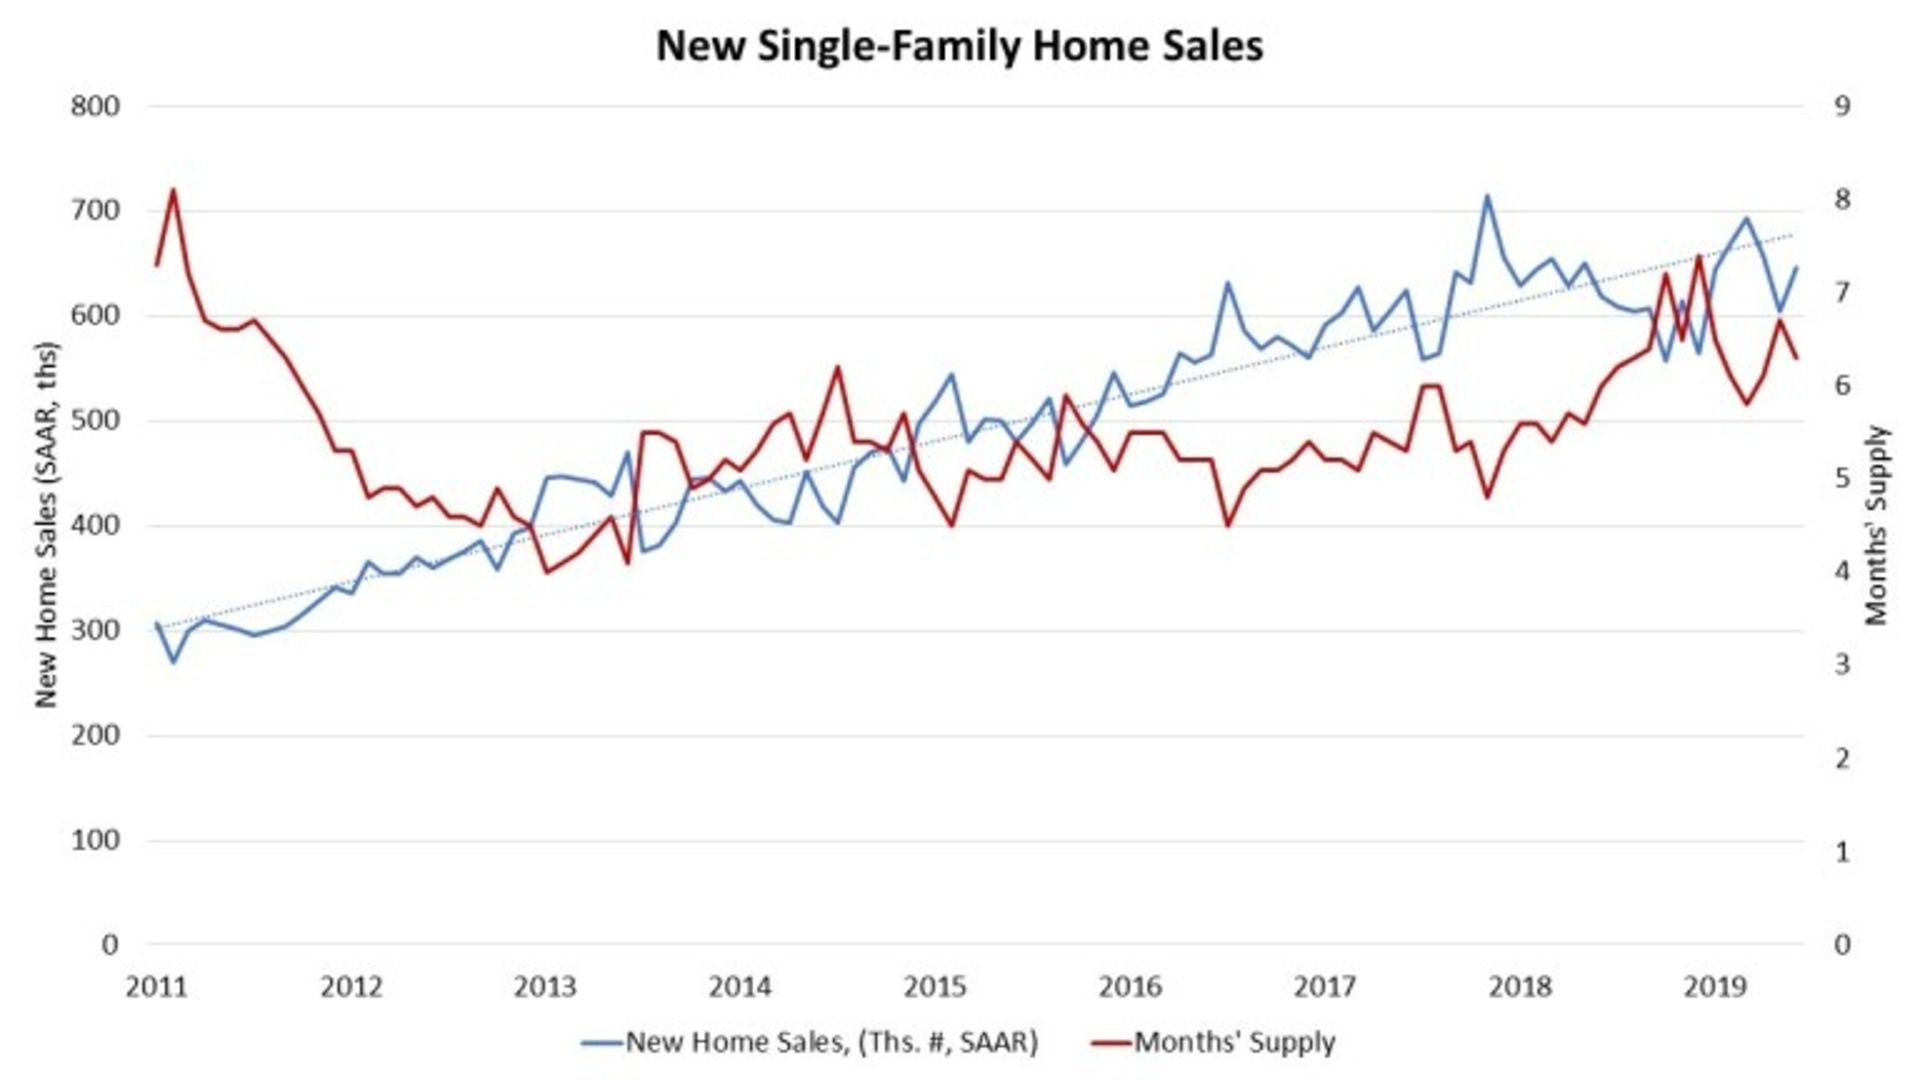 Housing Affordability Causes Ongoing Challenges in New Home Sales in June